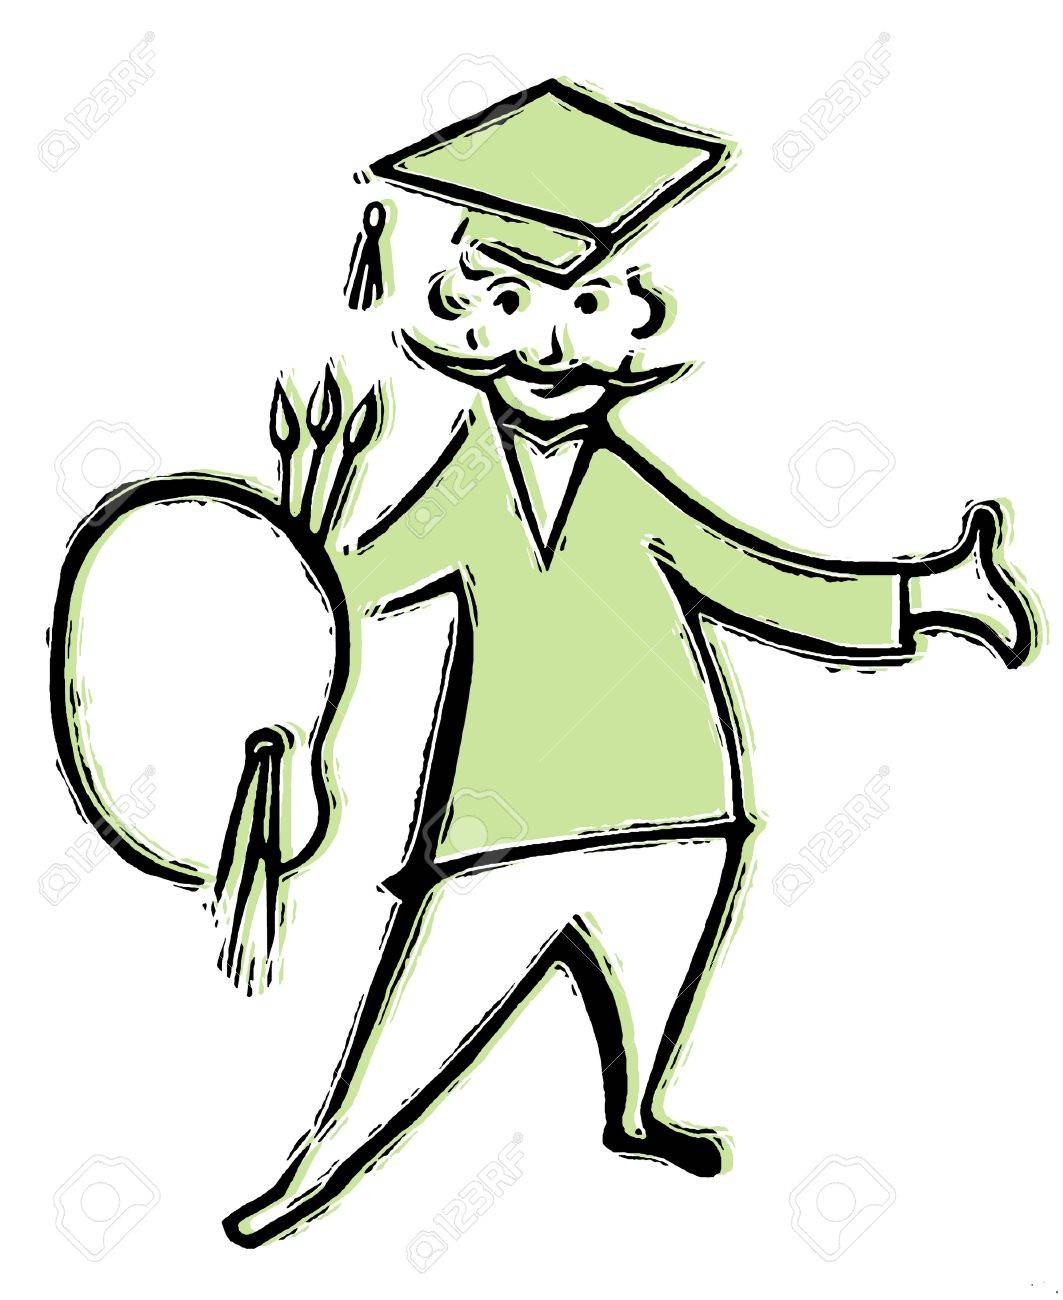 56ecfa56027 A drawing of a graduating artist stock photo picture and royalty jpg  1063x1300 Artist hat drawing